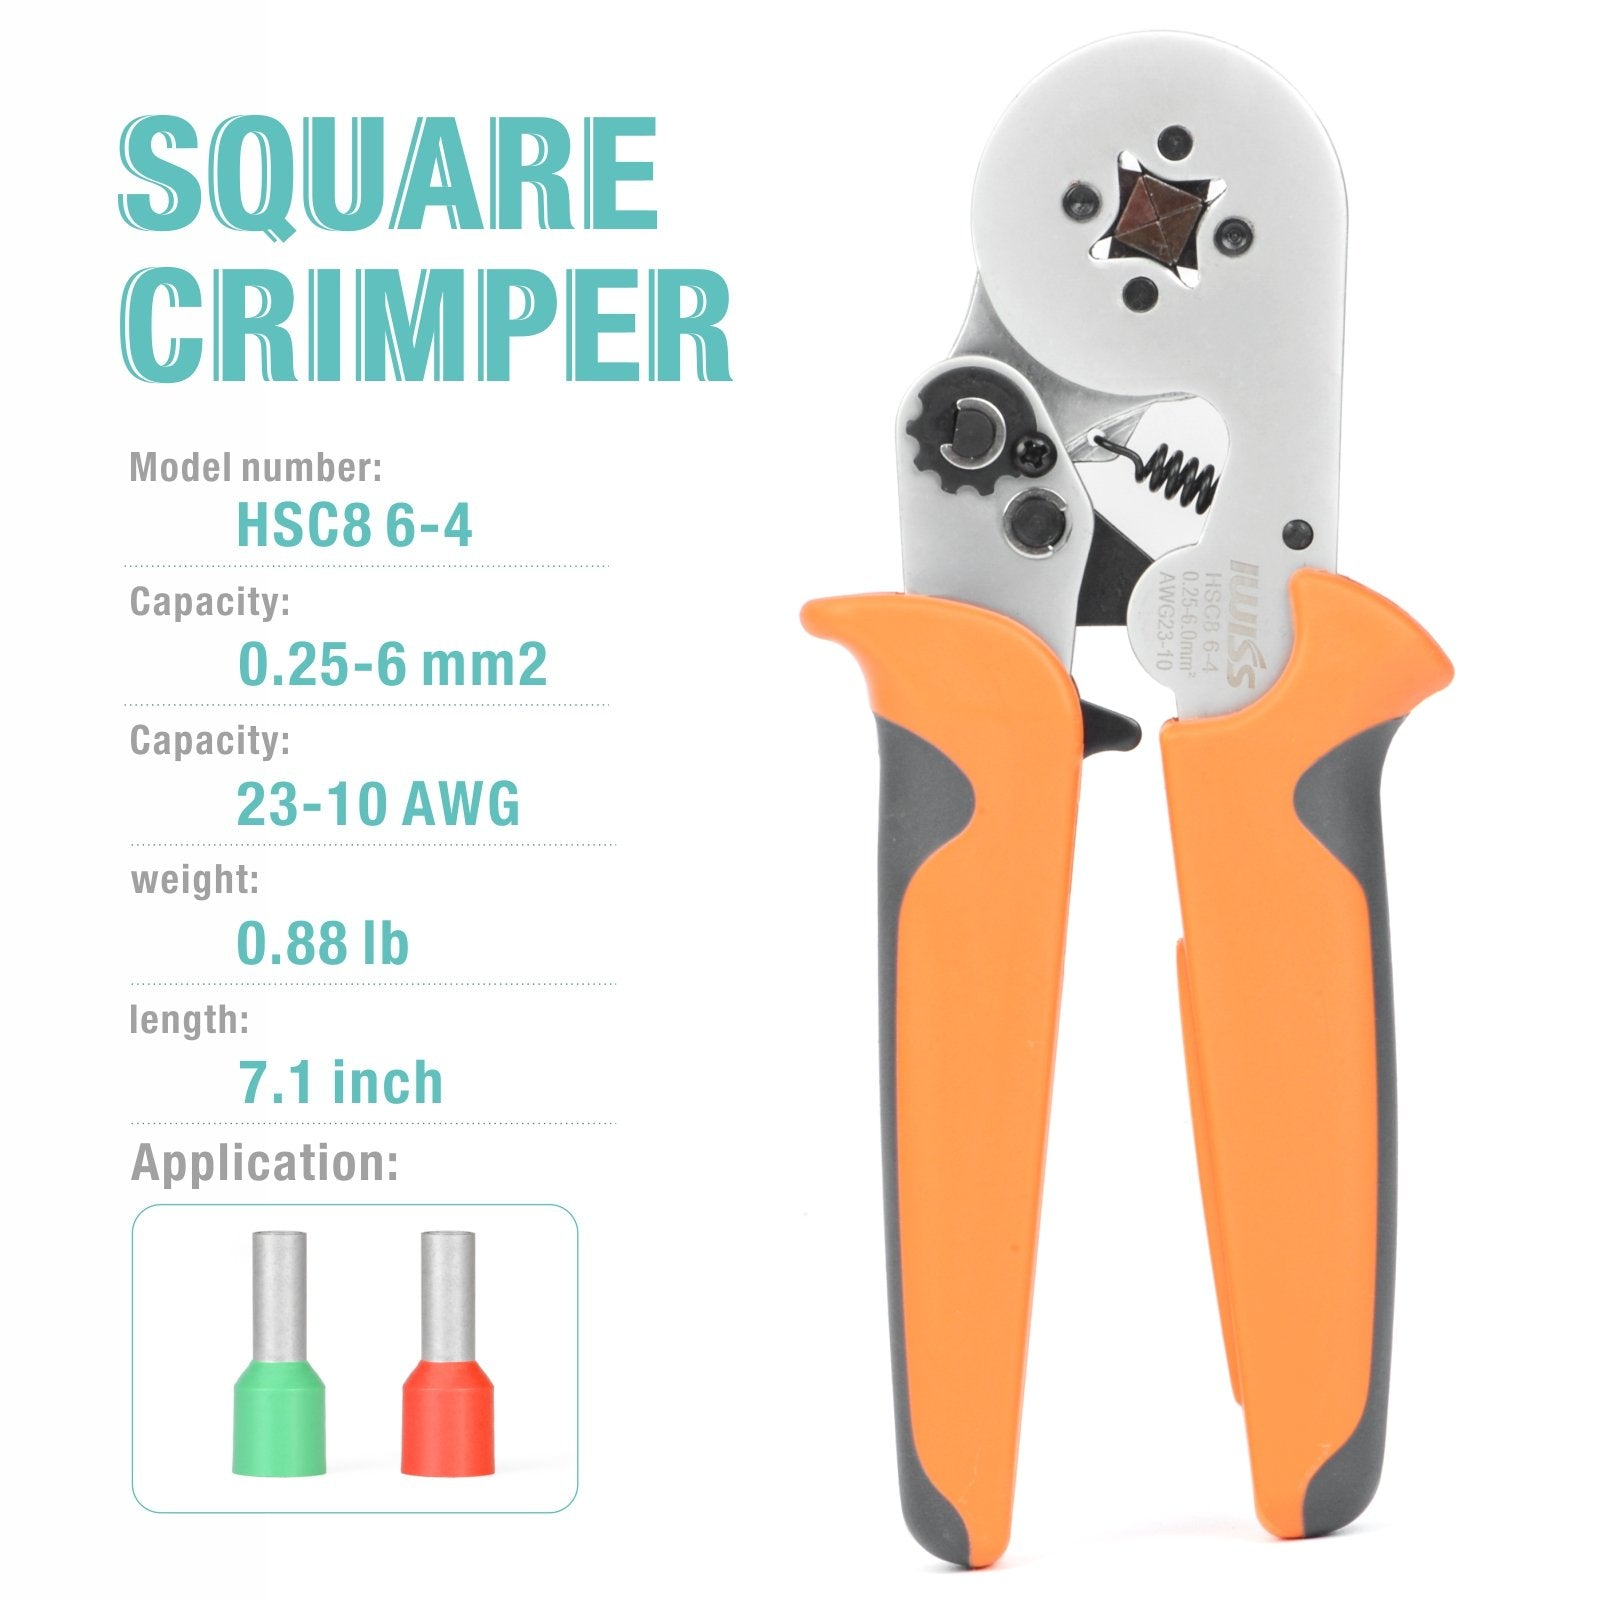 HSC8 6-4 Square Type Ratchet Crimping Tools for 0.25-6.0mm² End Sleeves